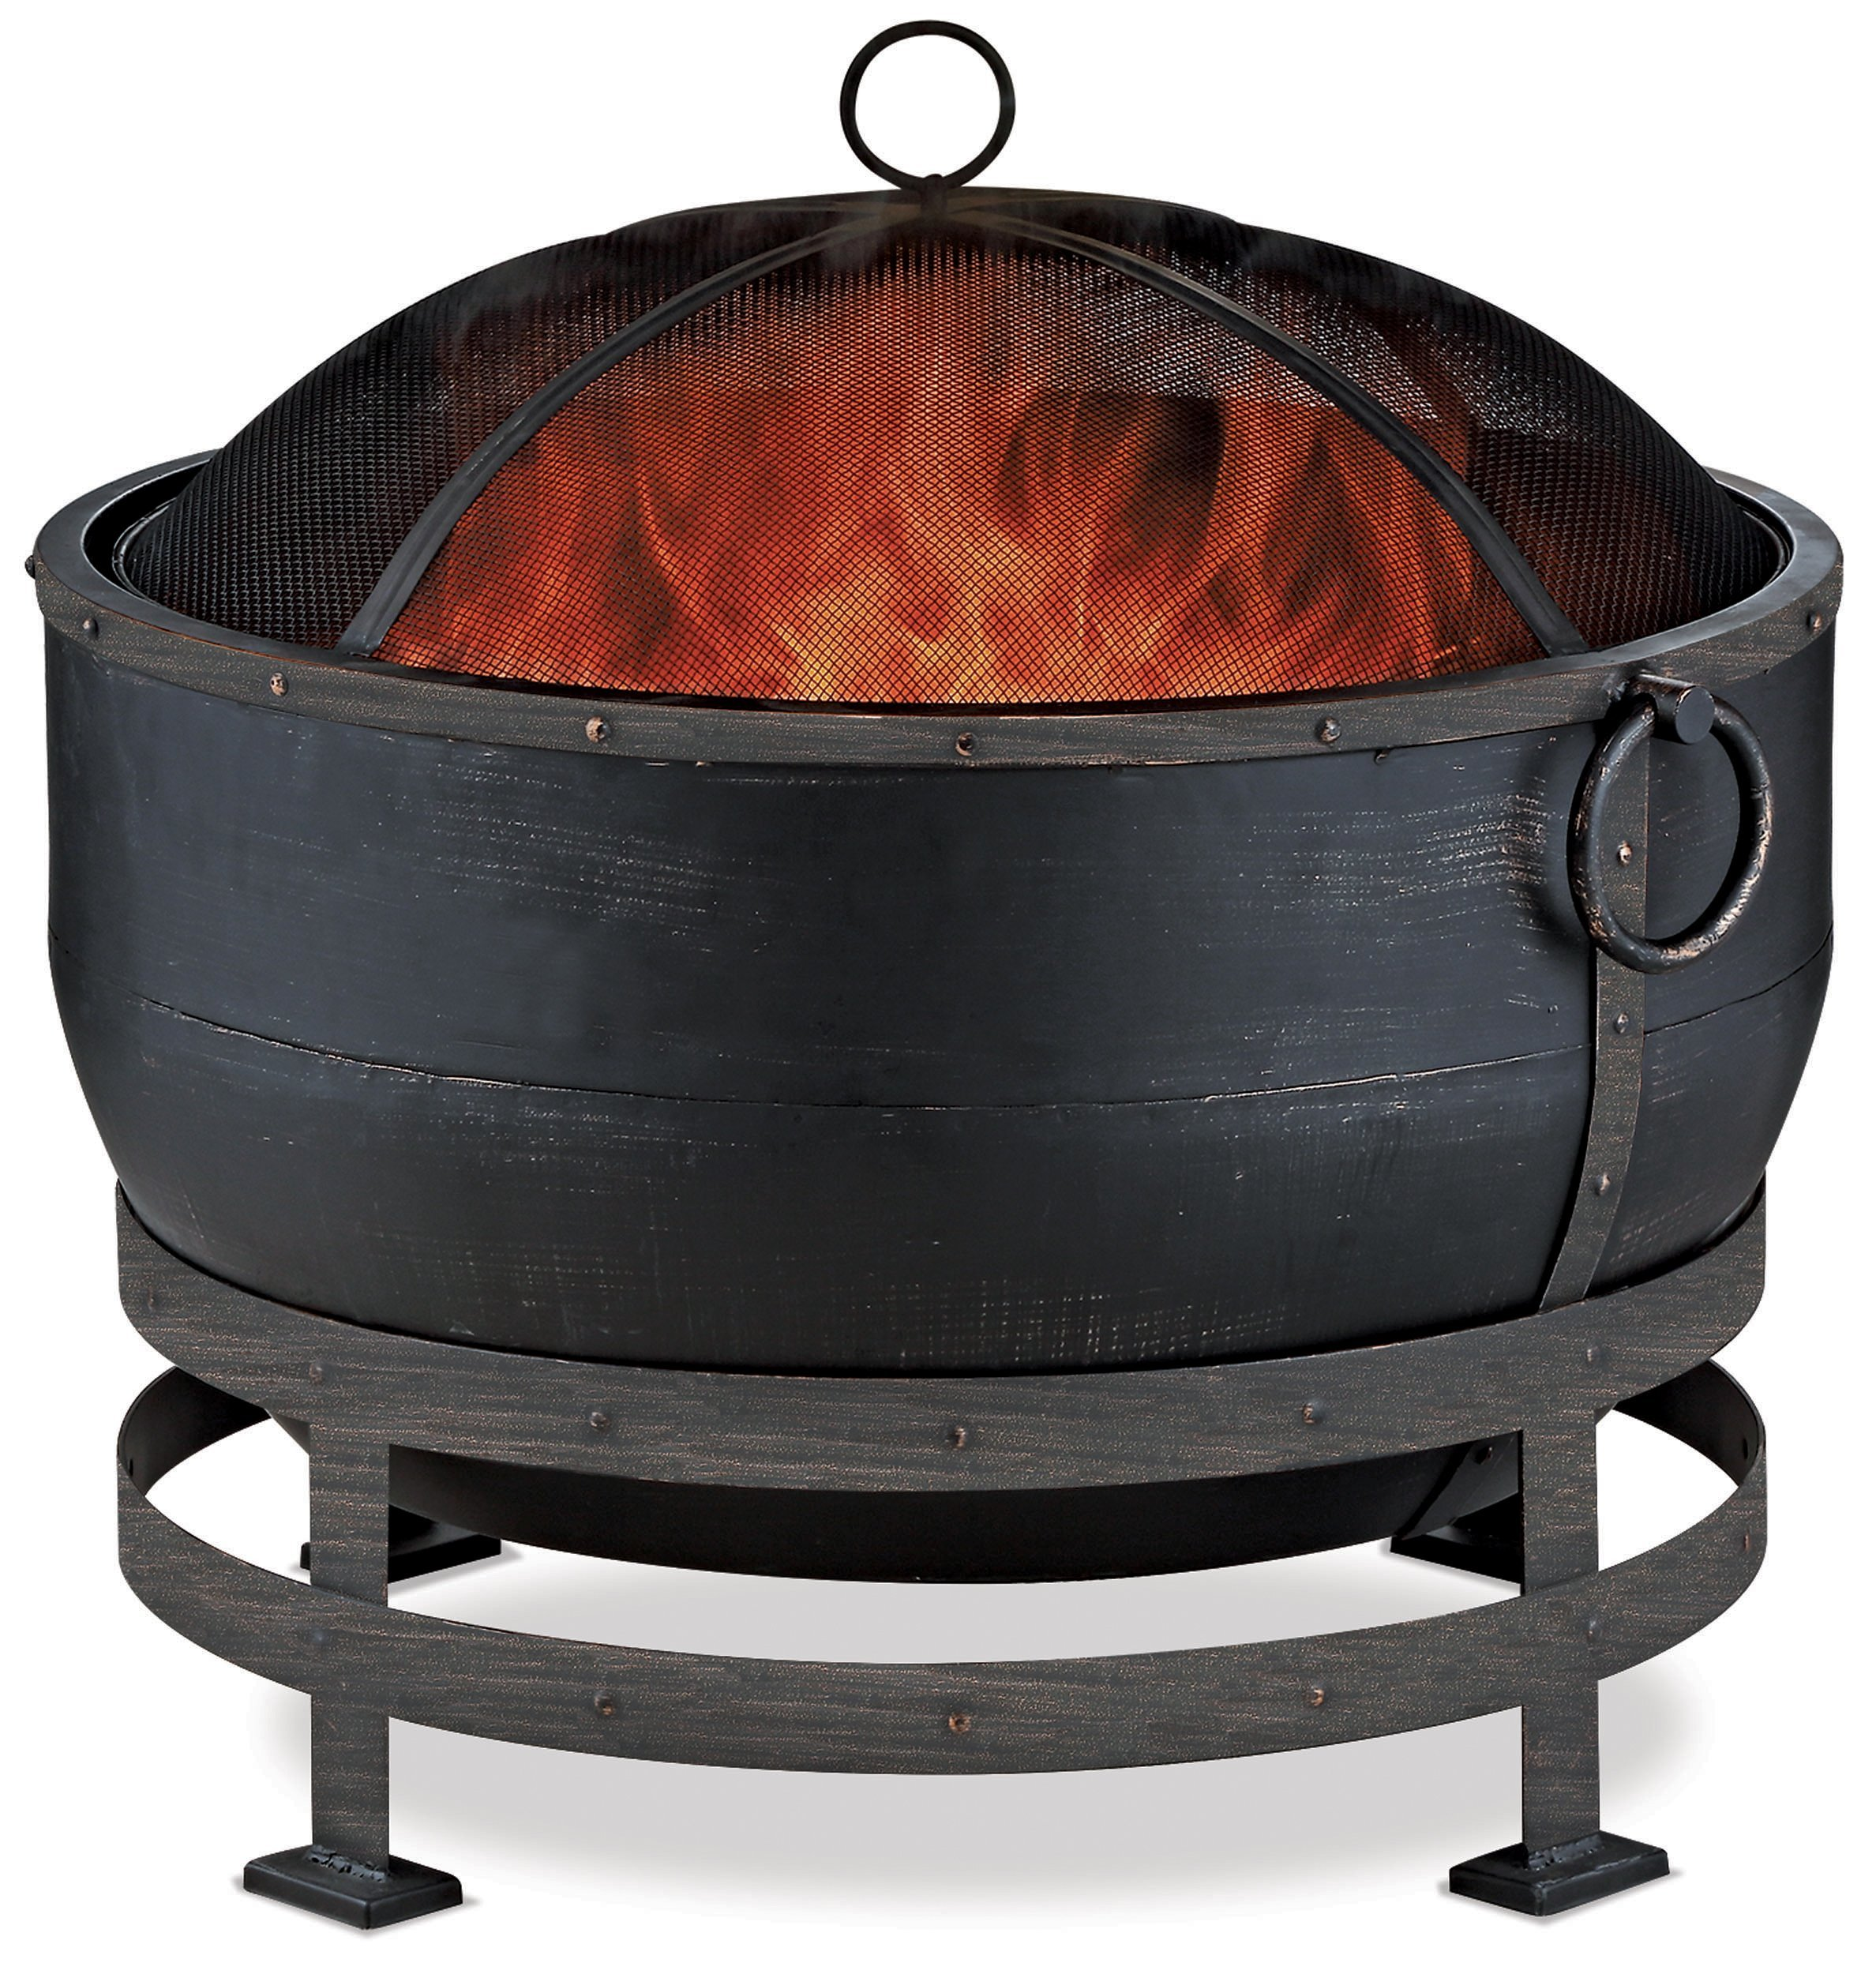 Endless Summer WAD1579SP Oil Rubbed Bronze Wood Burning Outdoor Firebowl with Kettle Design by Endless Summer